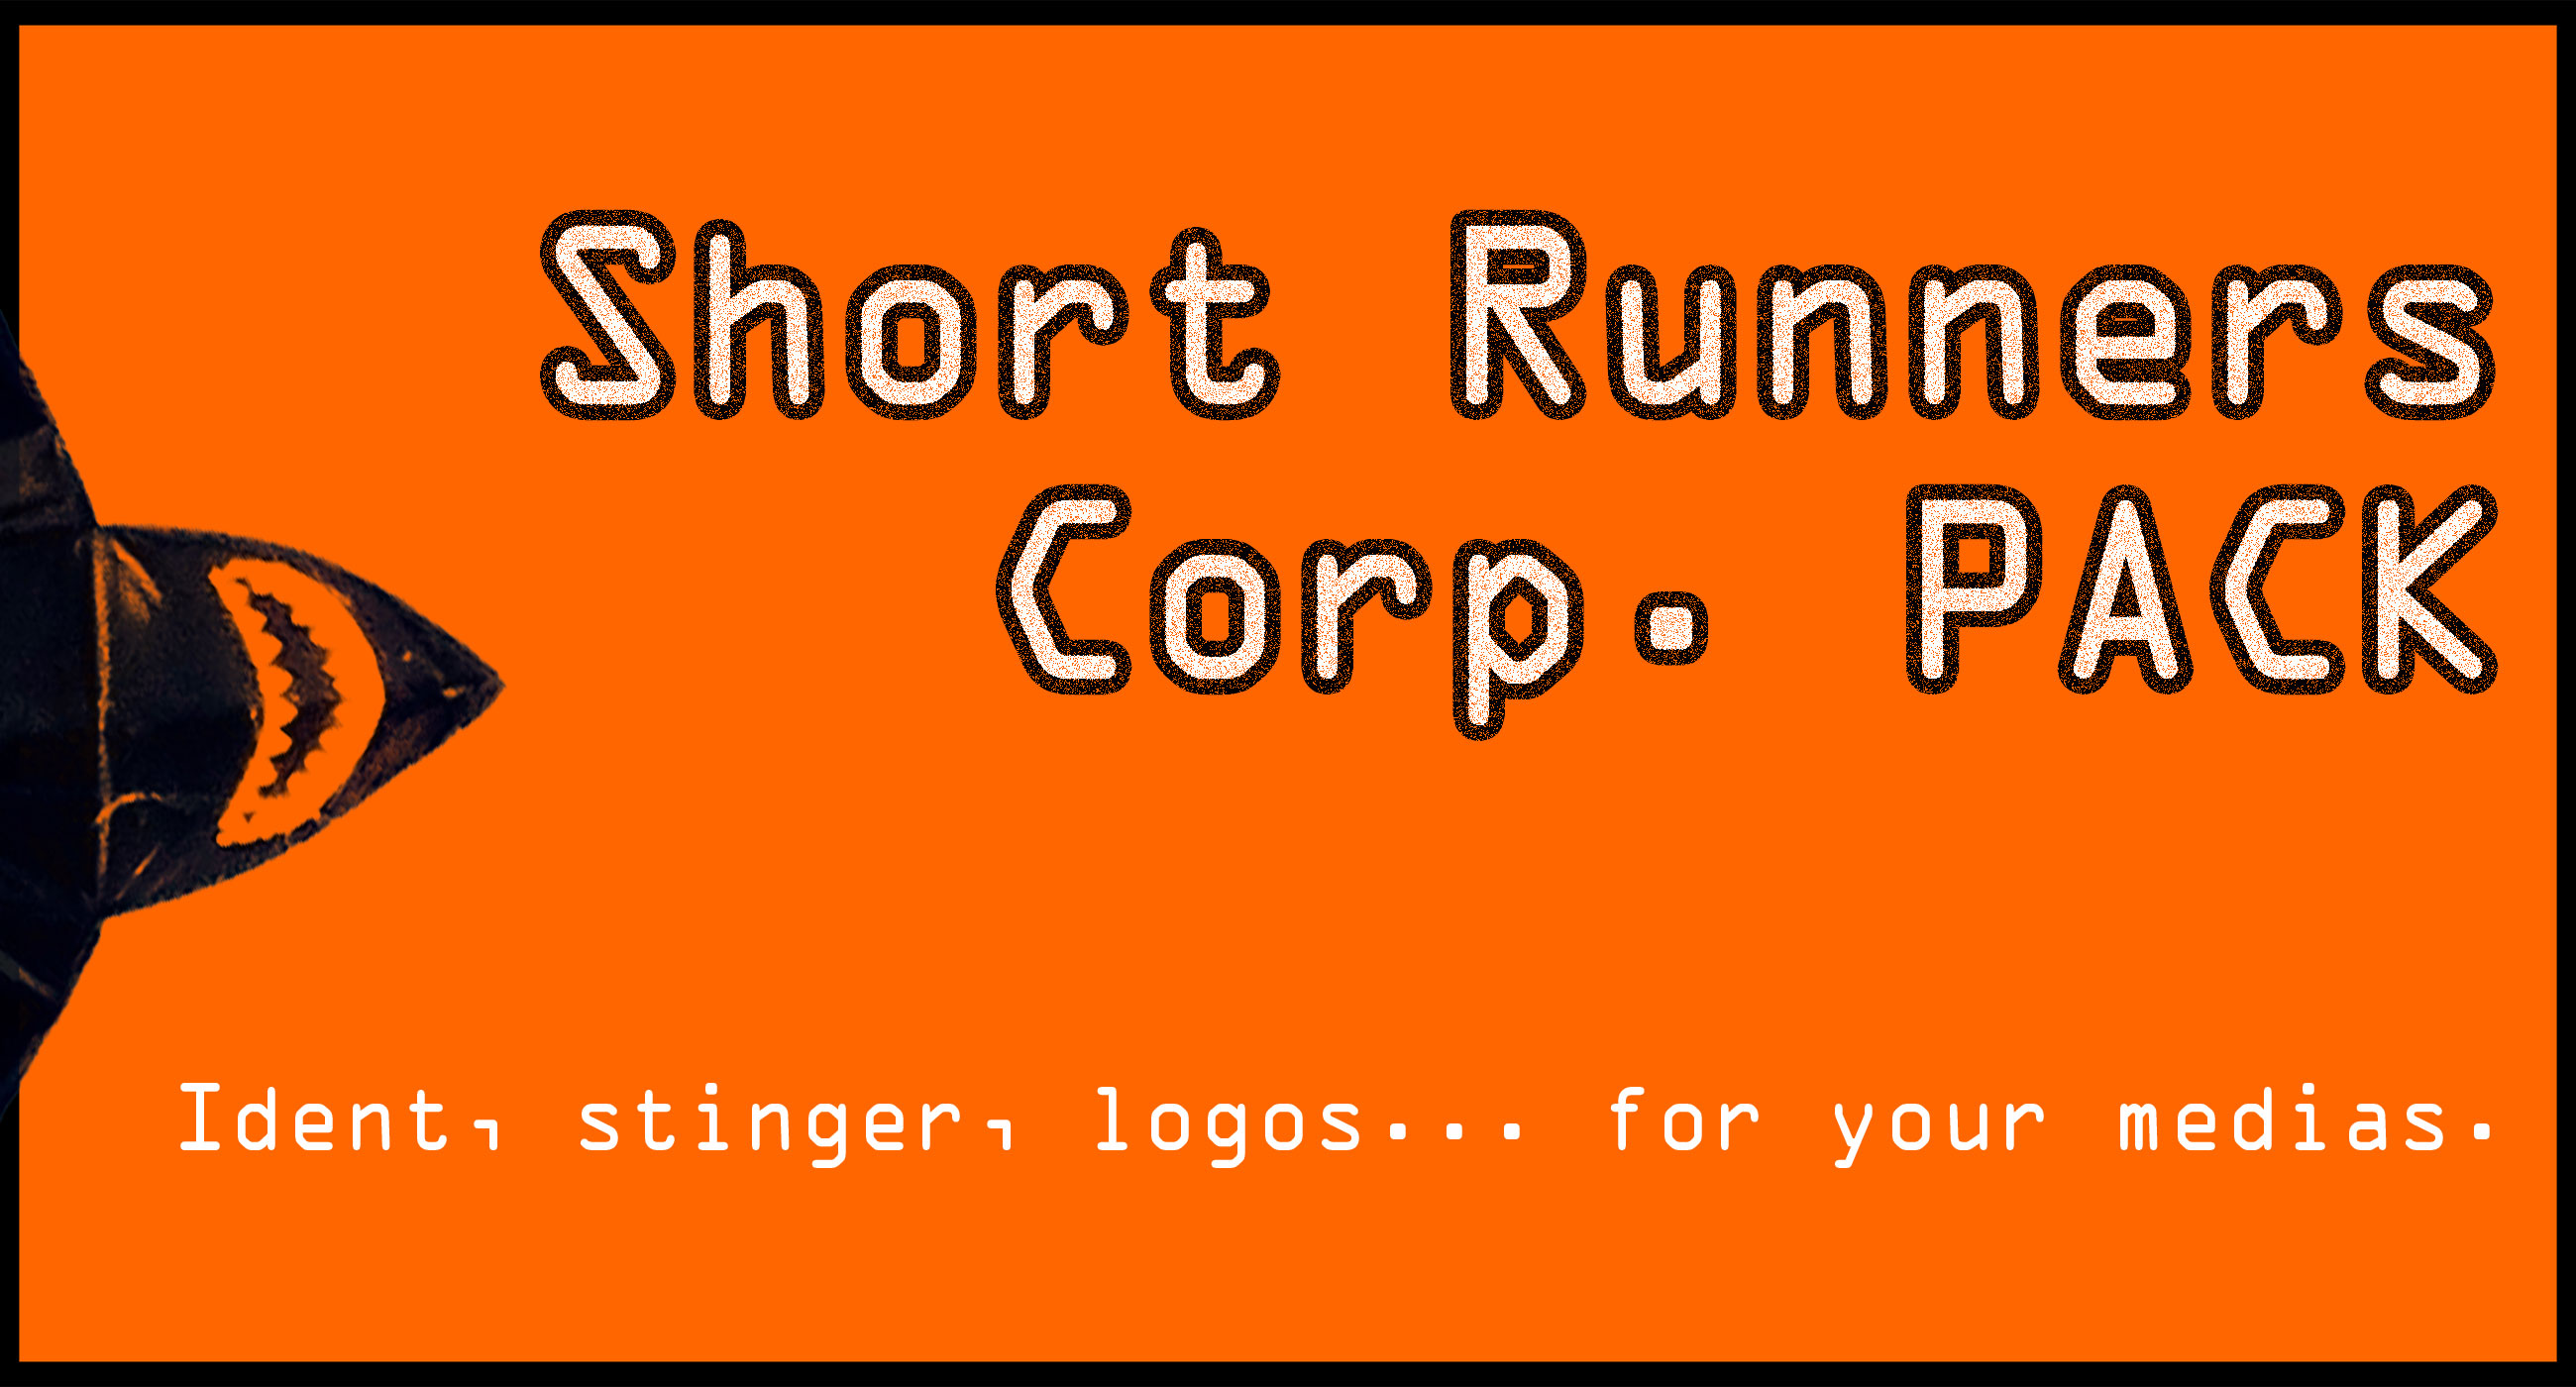 Short Runners Corp Pack